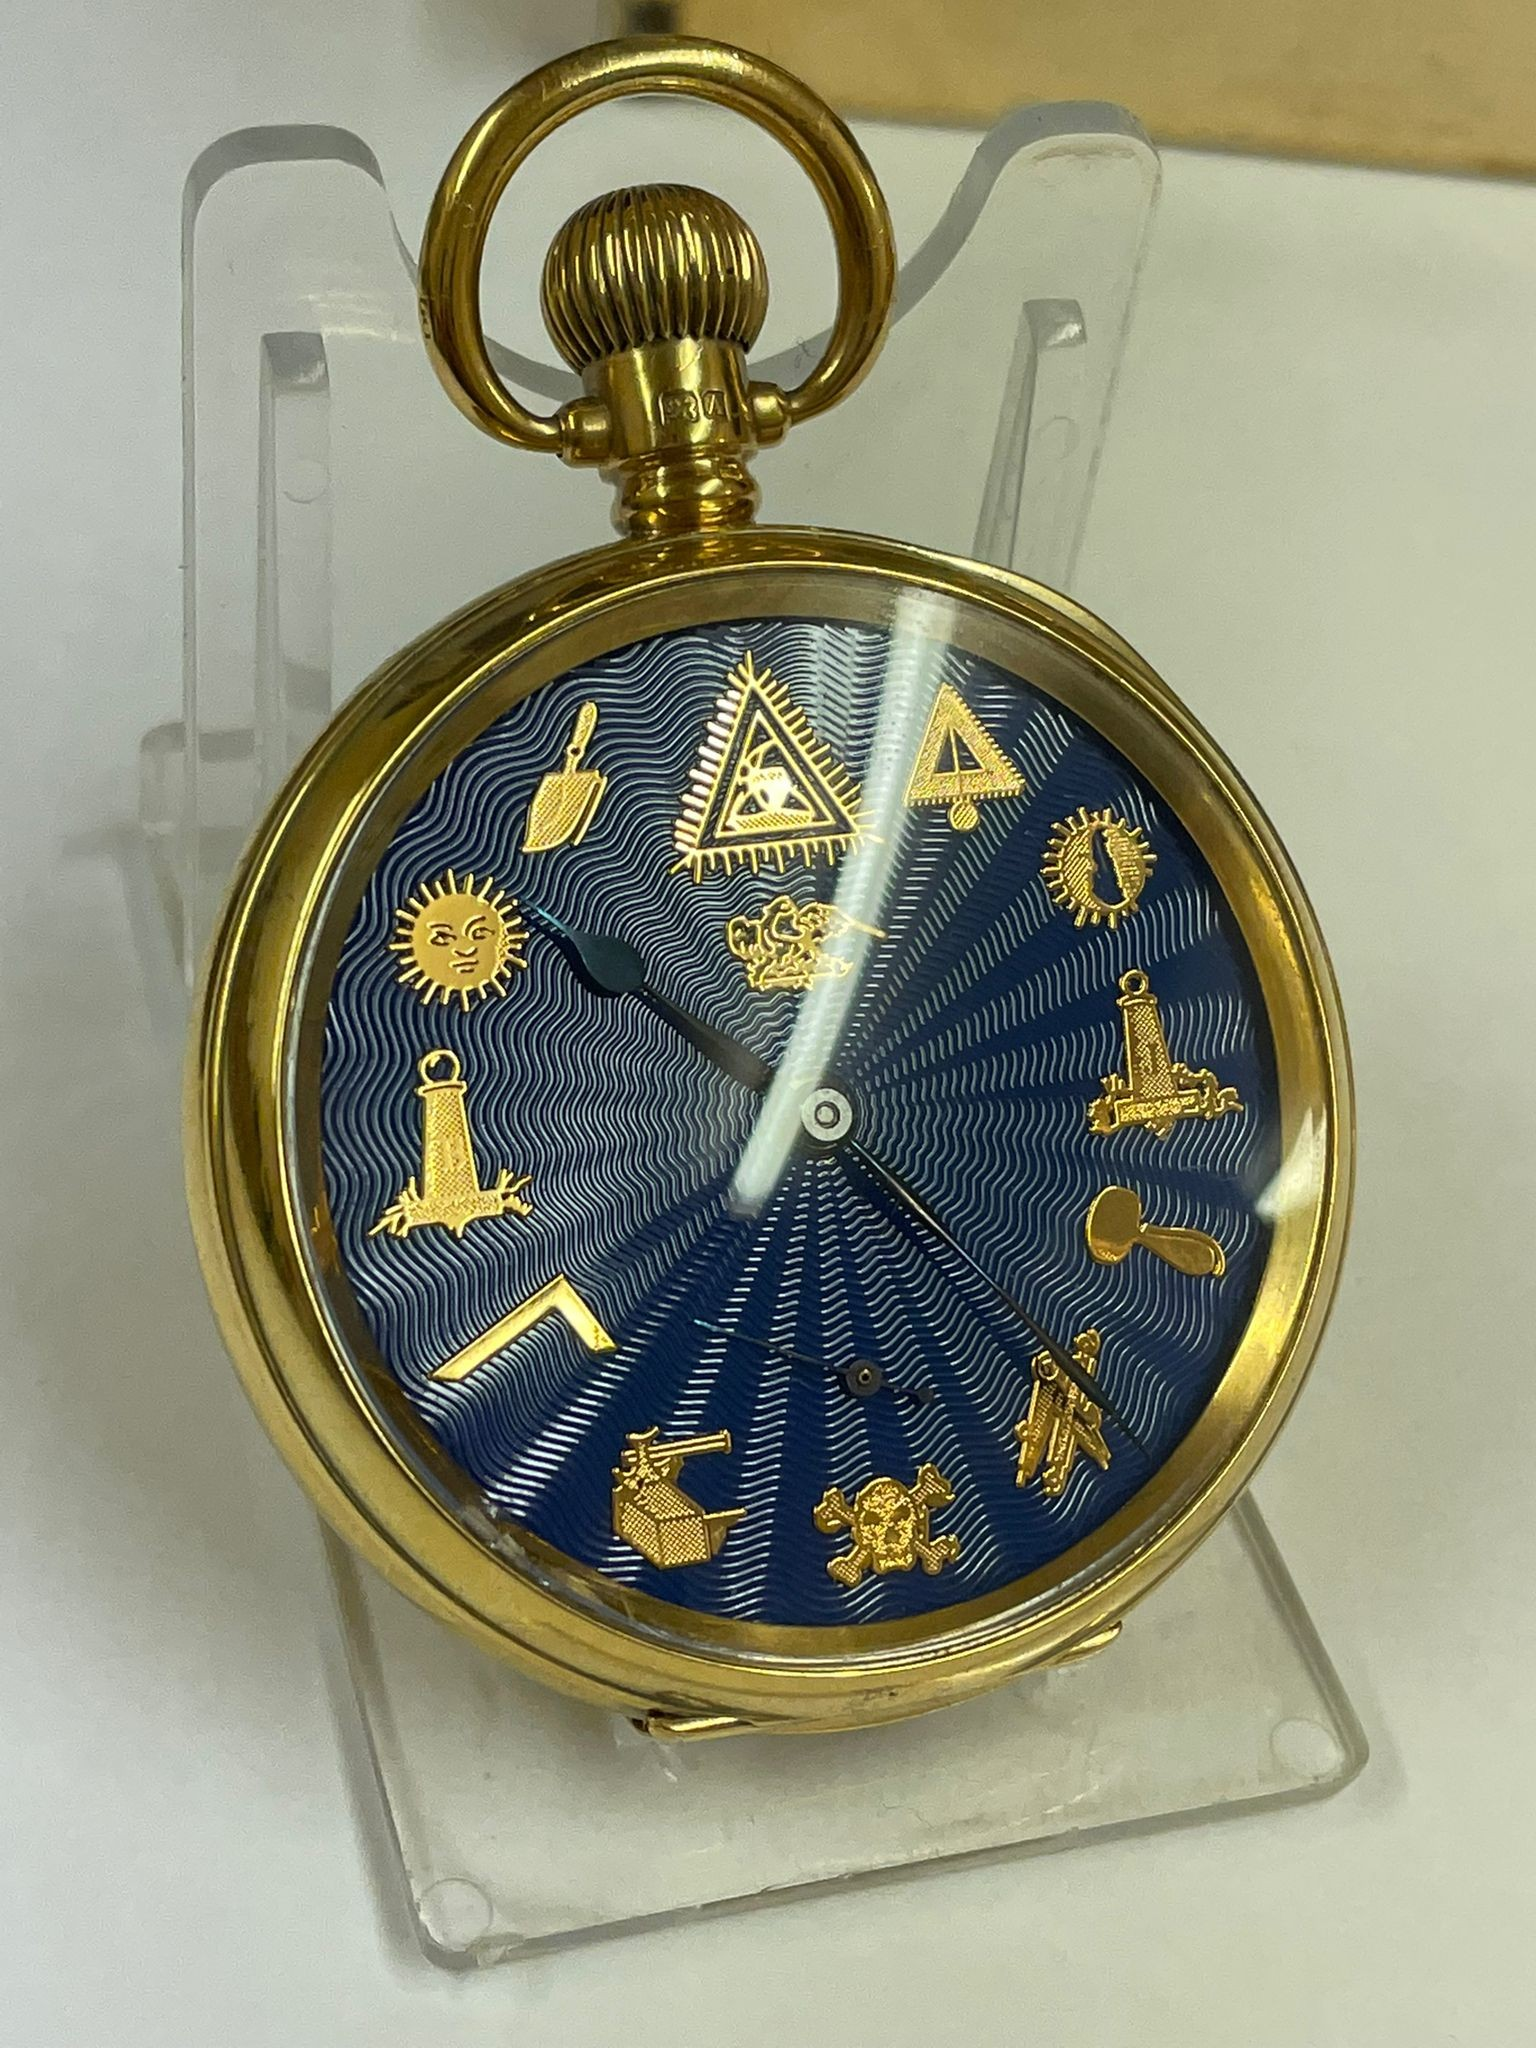 Vintage Masonic Rolex pocket watch with stand good condition and good working order but no - Image 14 of 21